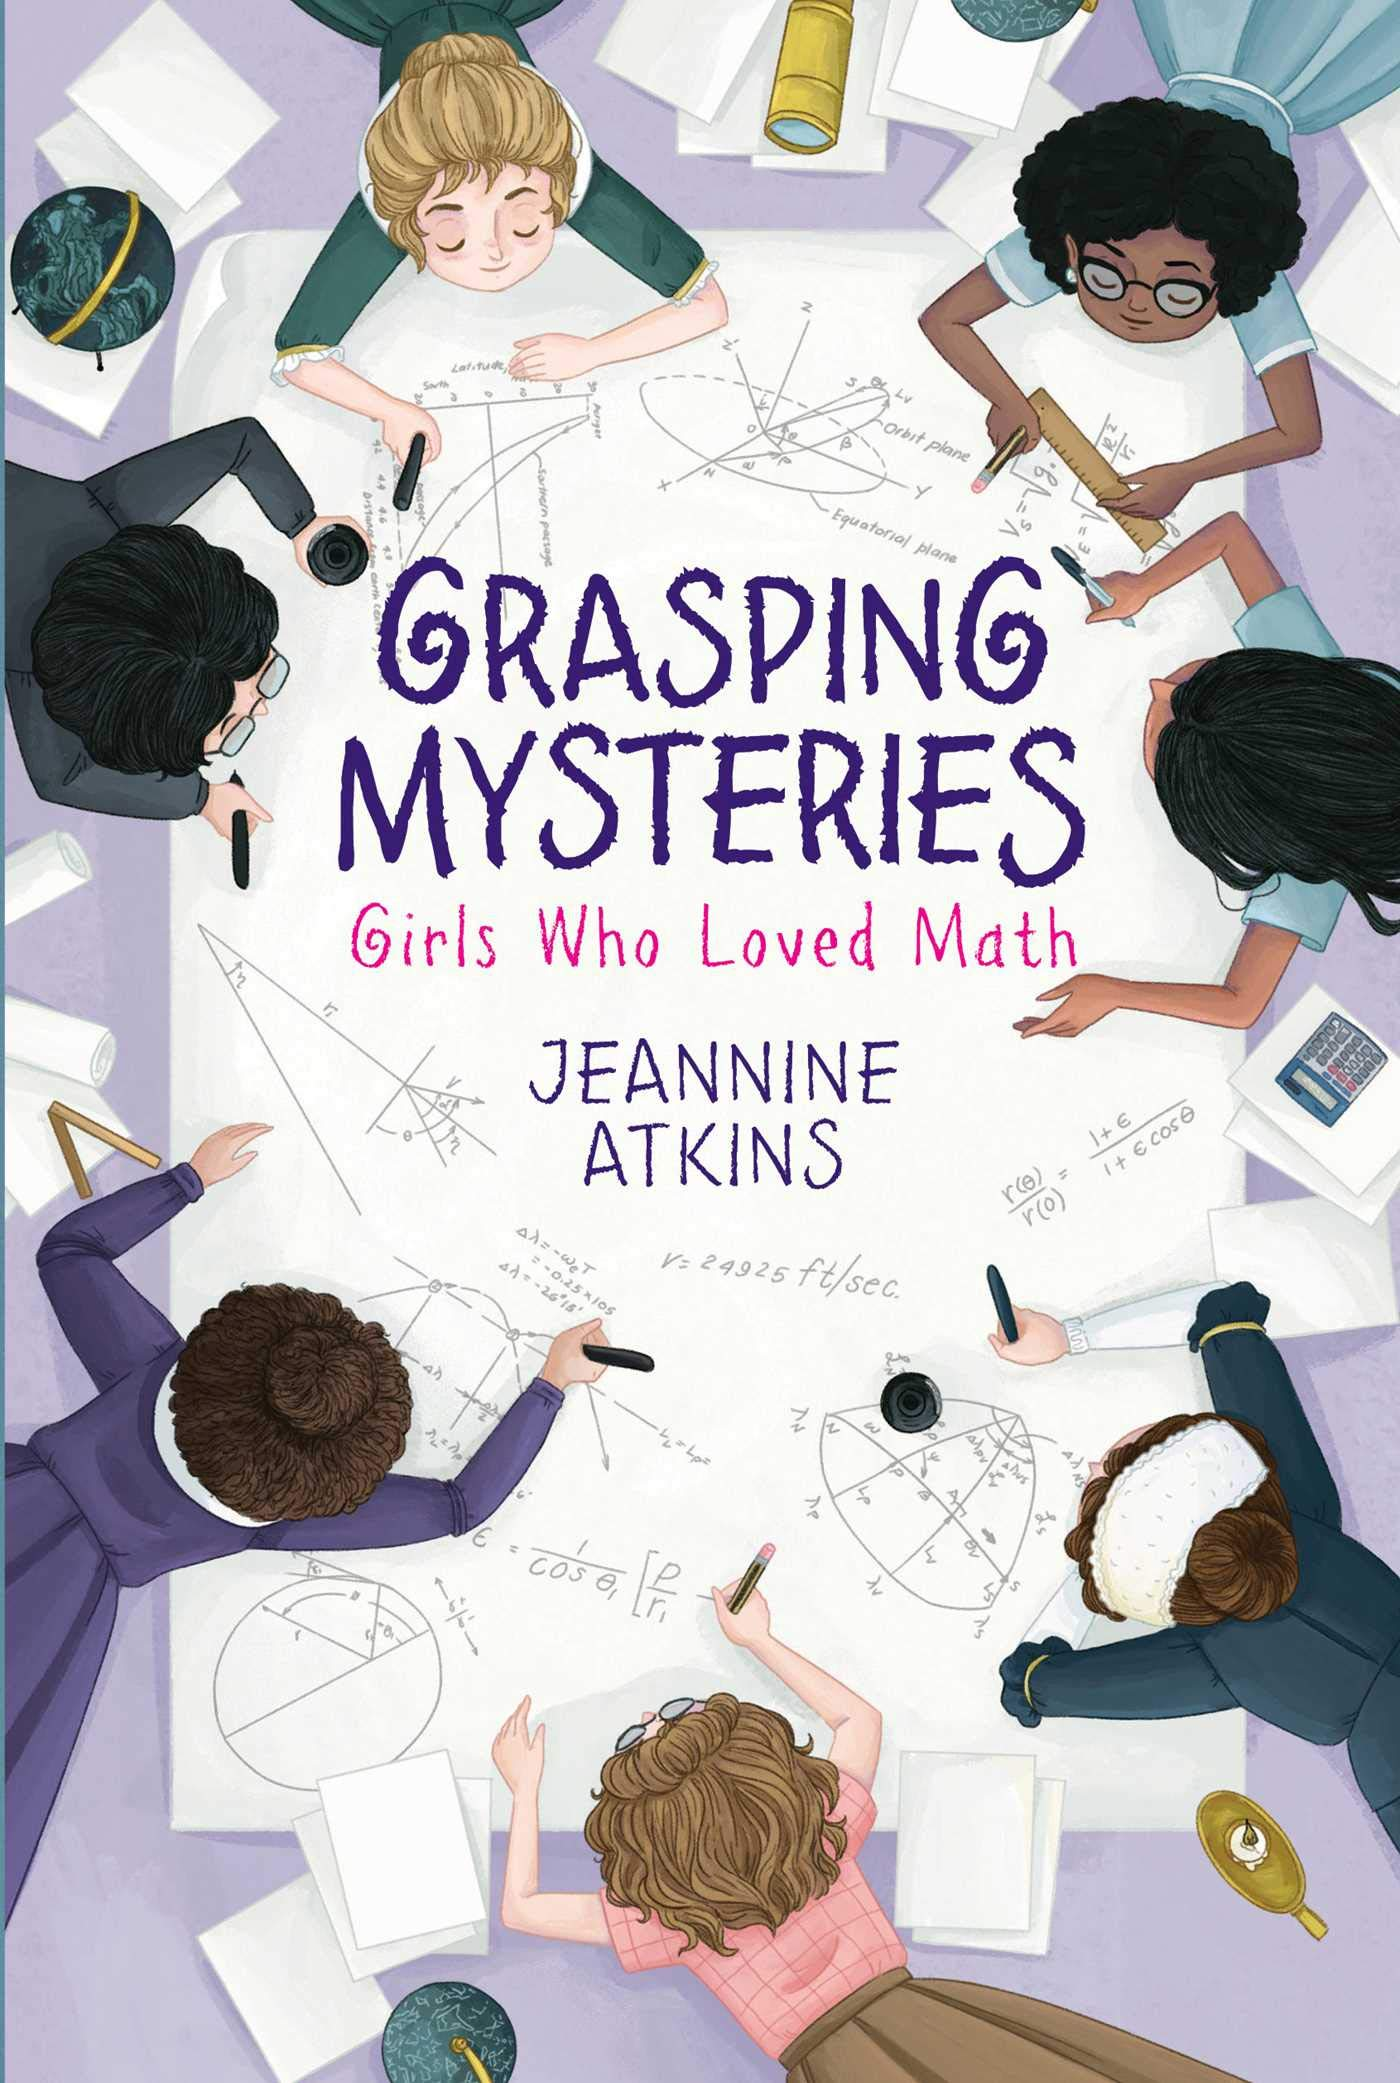 Amazon.com: Grasping Mysteries: Girls Who Loved Math ...